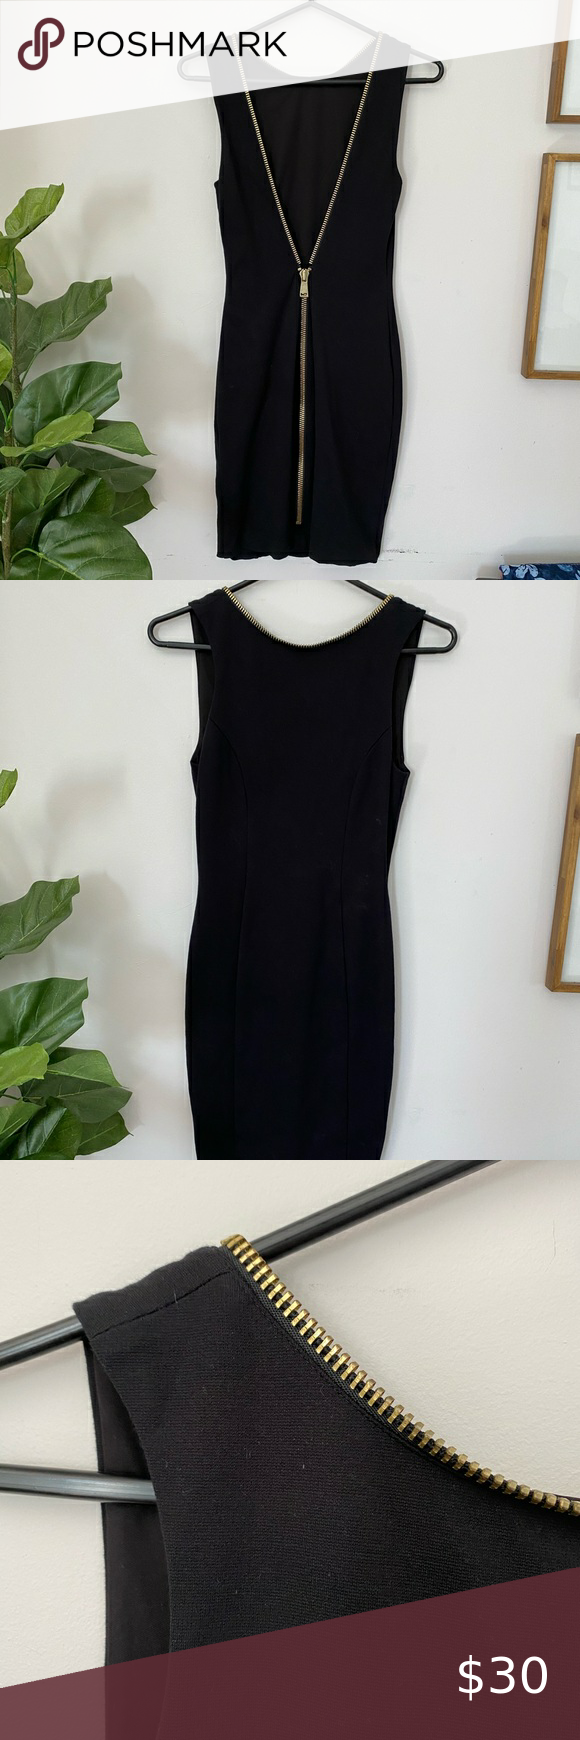 Express Little Black Dress Gold Accents Low Back Little Black Dress Black Dress Gold Dress [ 1740 x 580 Pixel ]